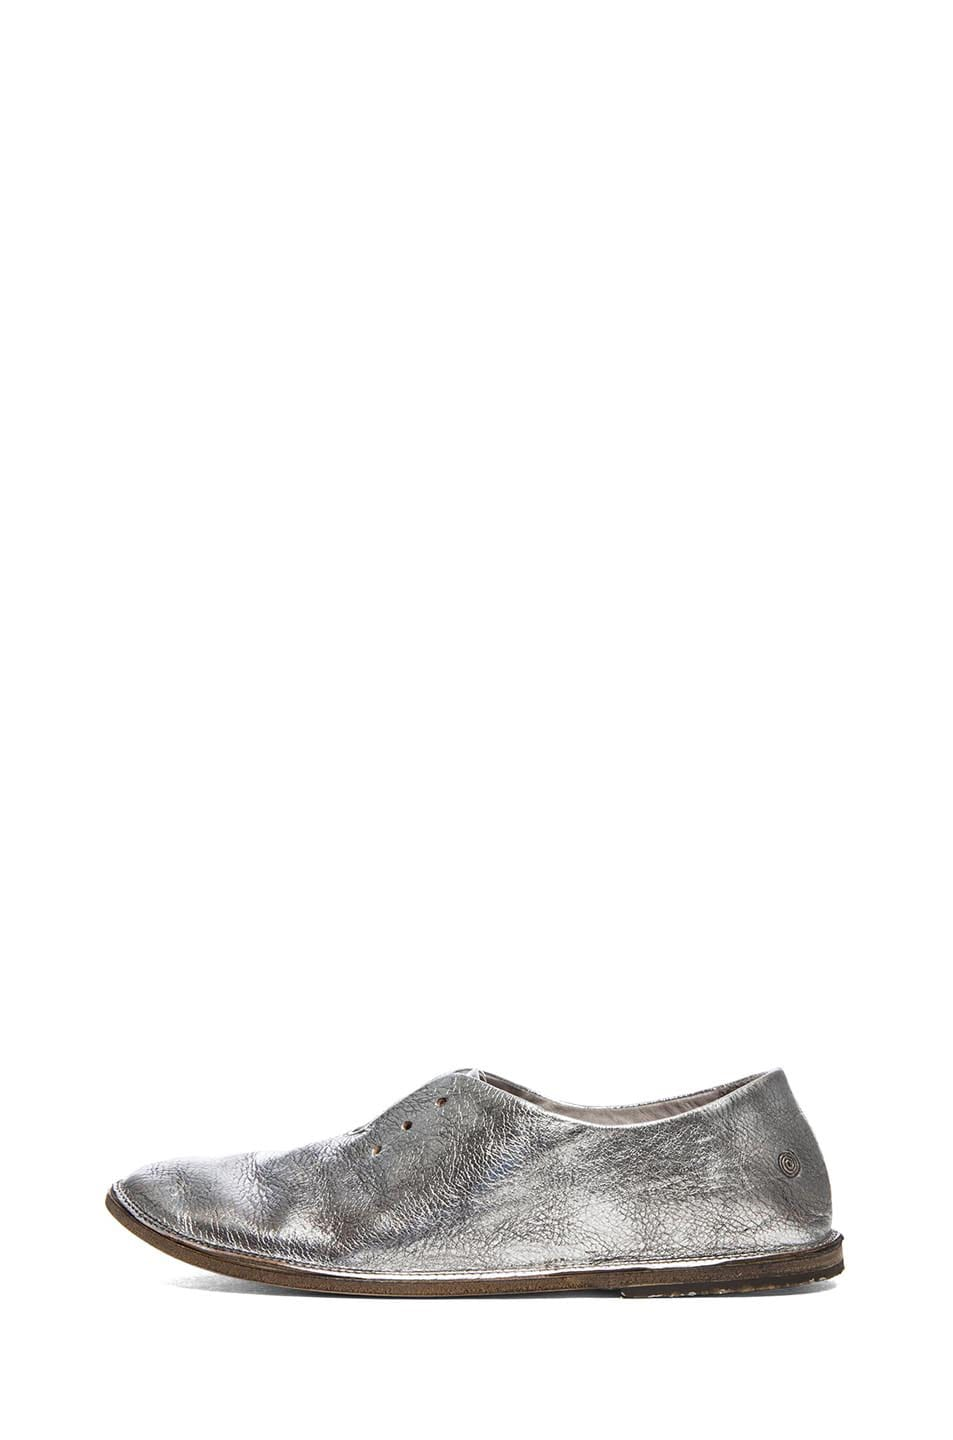 Image 1 of Marsell Strasacco Metallic Leather Oxfords in Steel